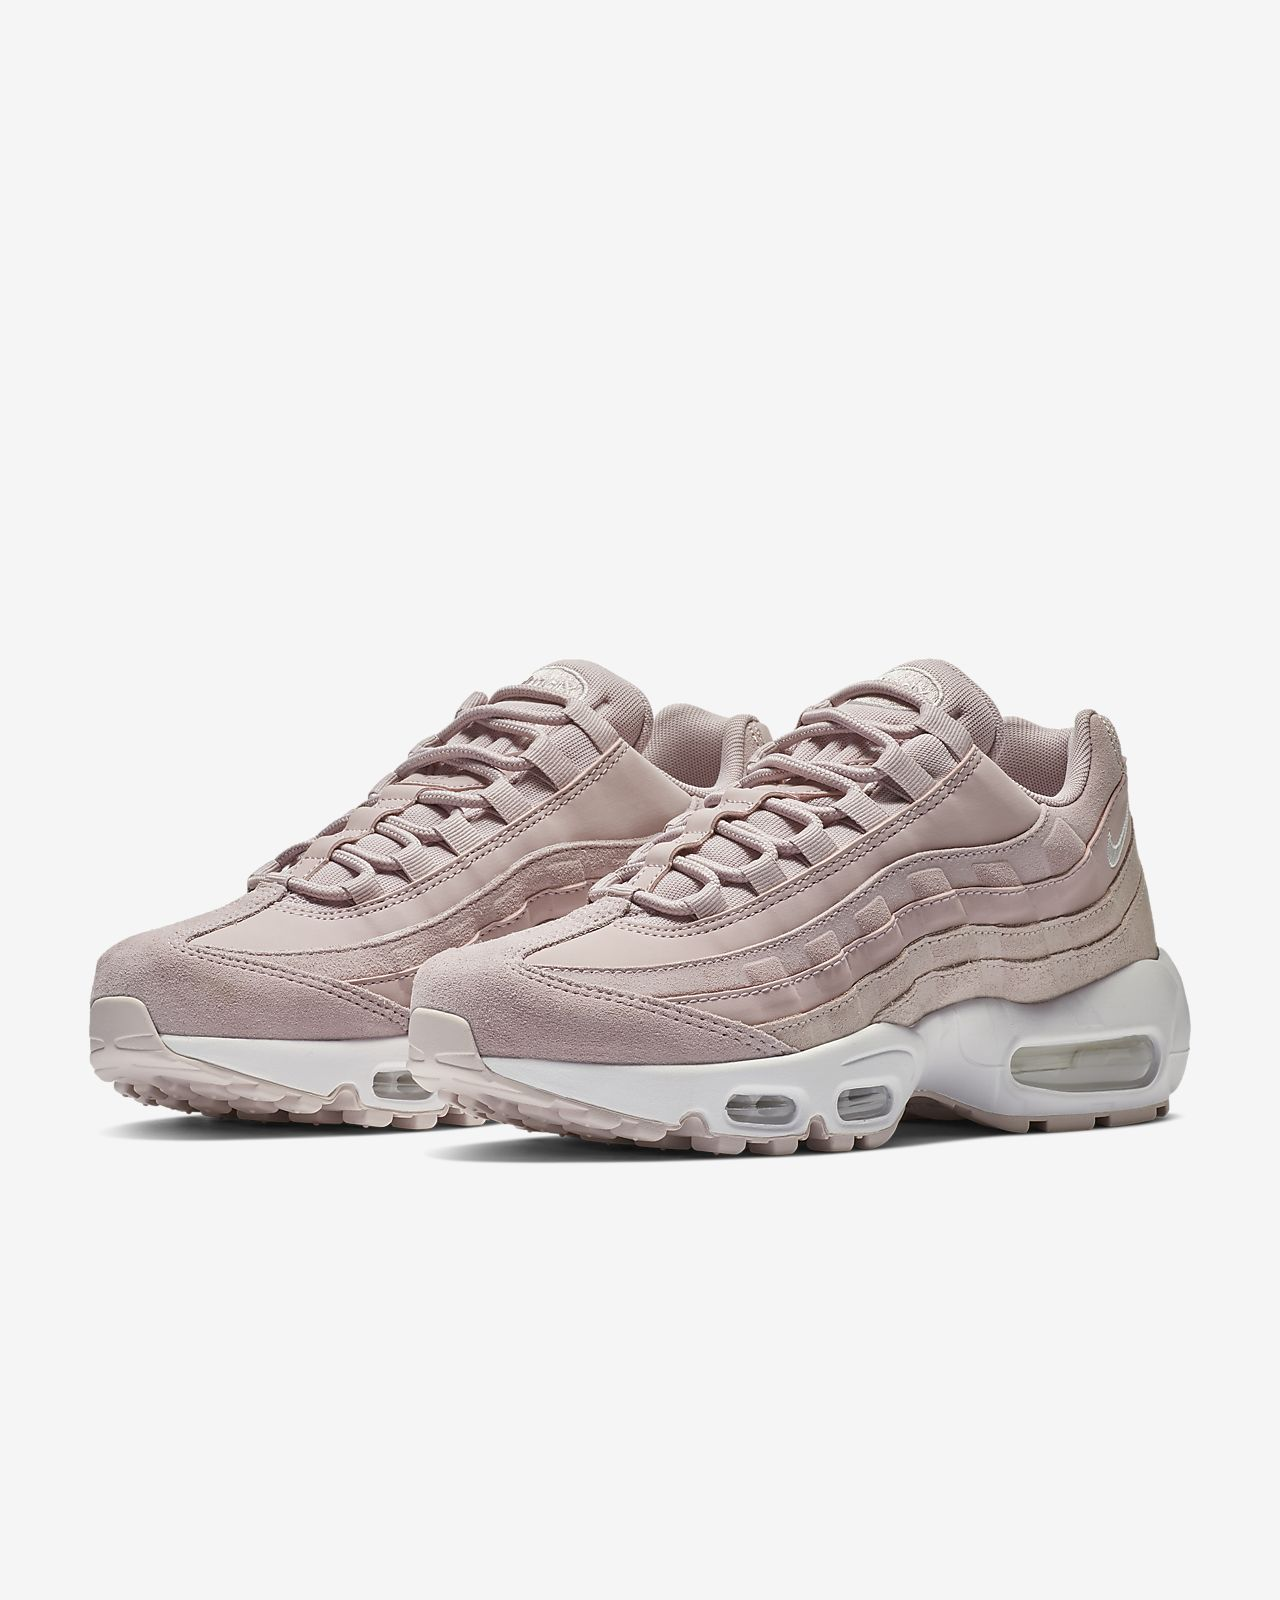 Nike Air Max 95 Premium Women's Shoe